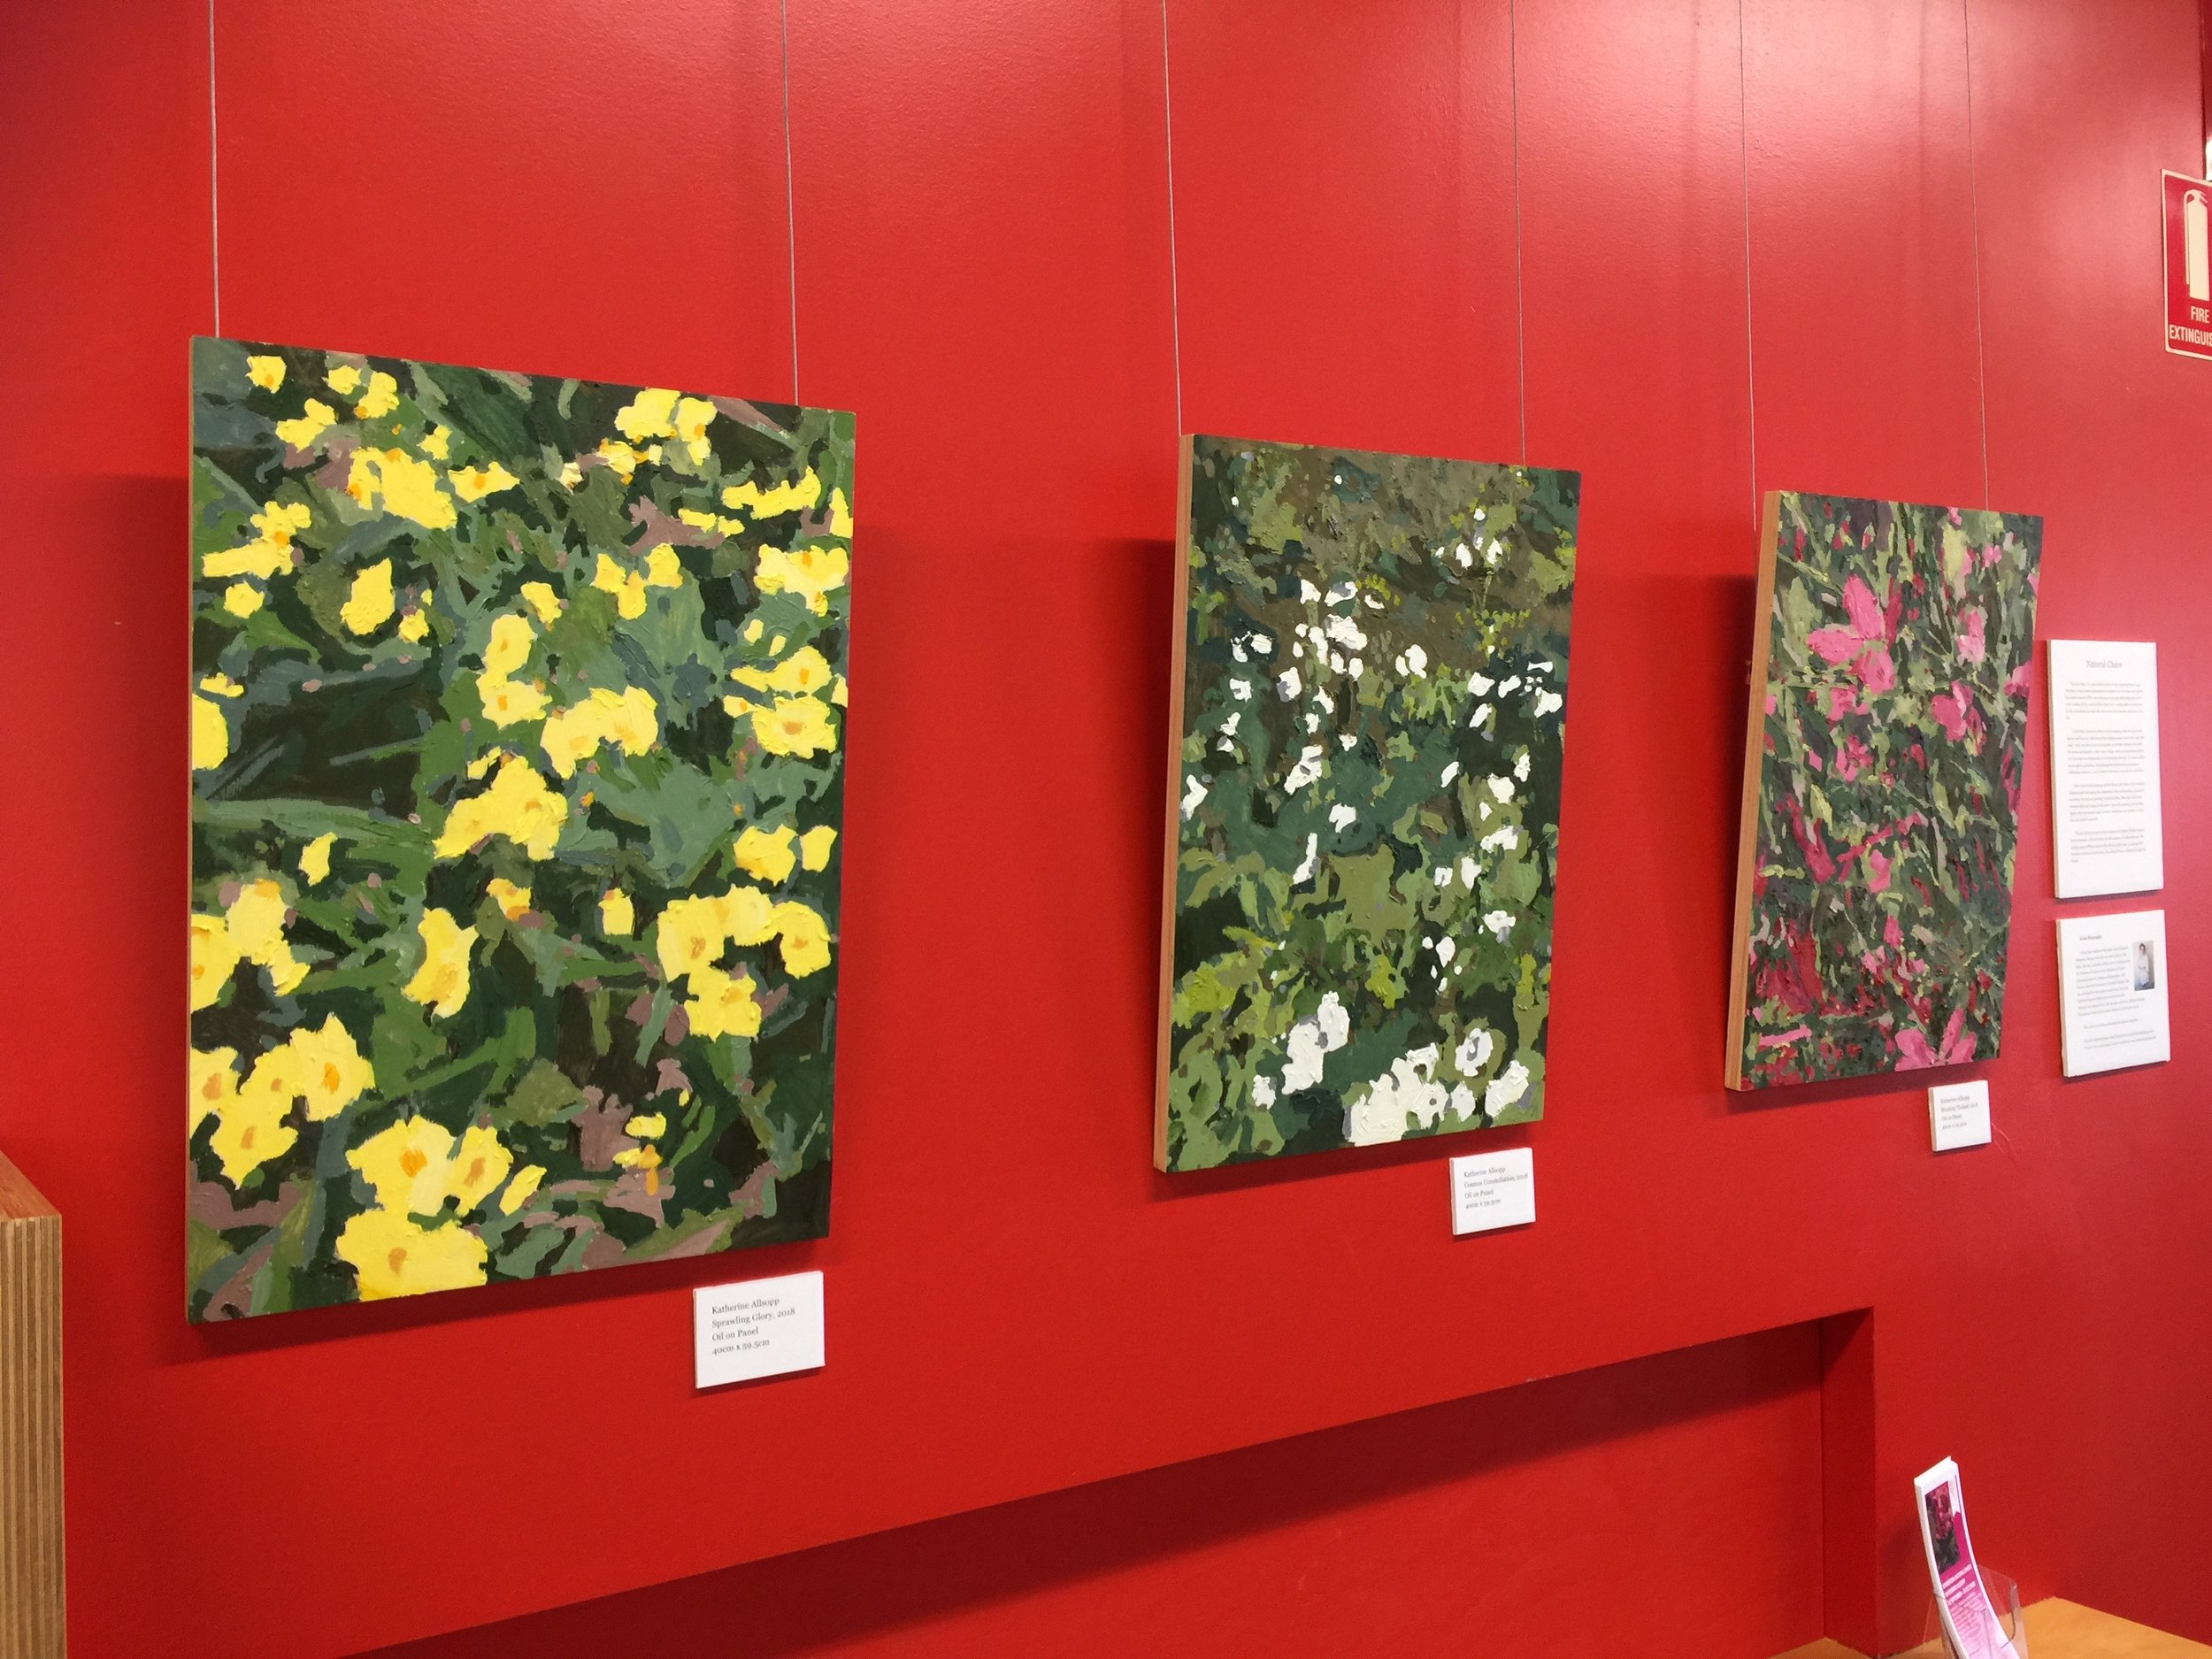 A selection of work looking striking on the red gallery wall